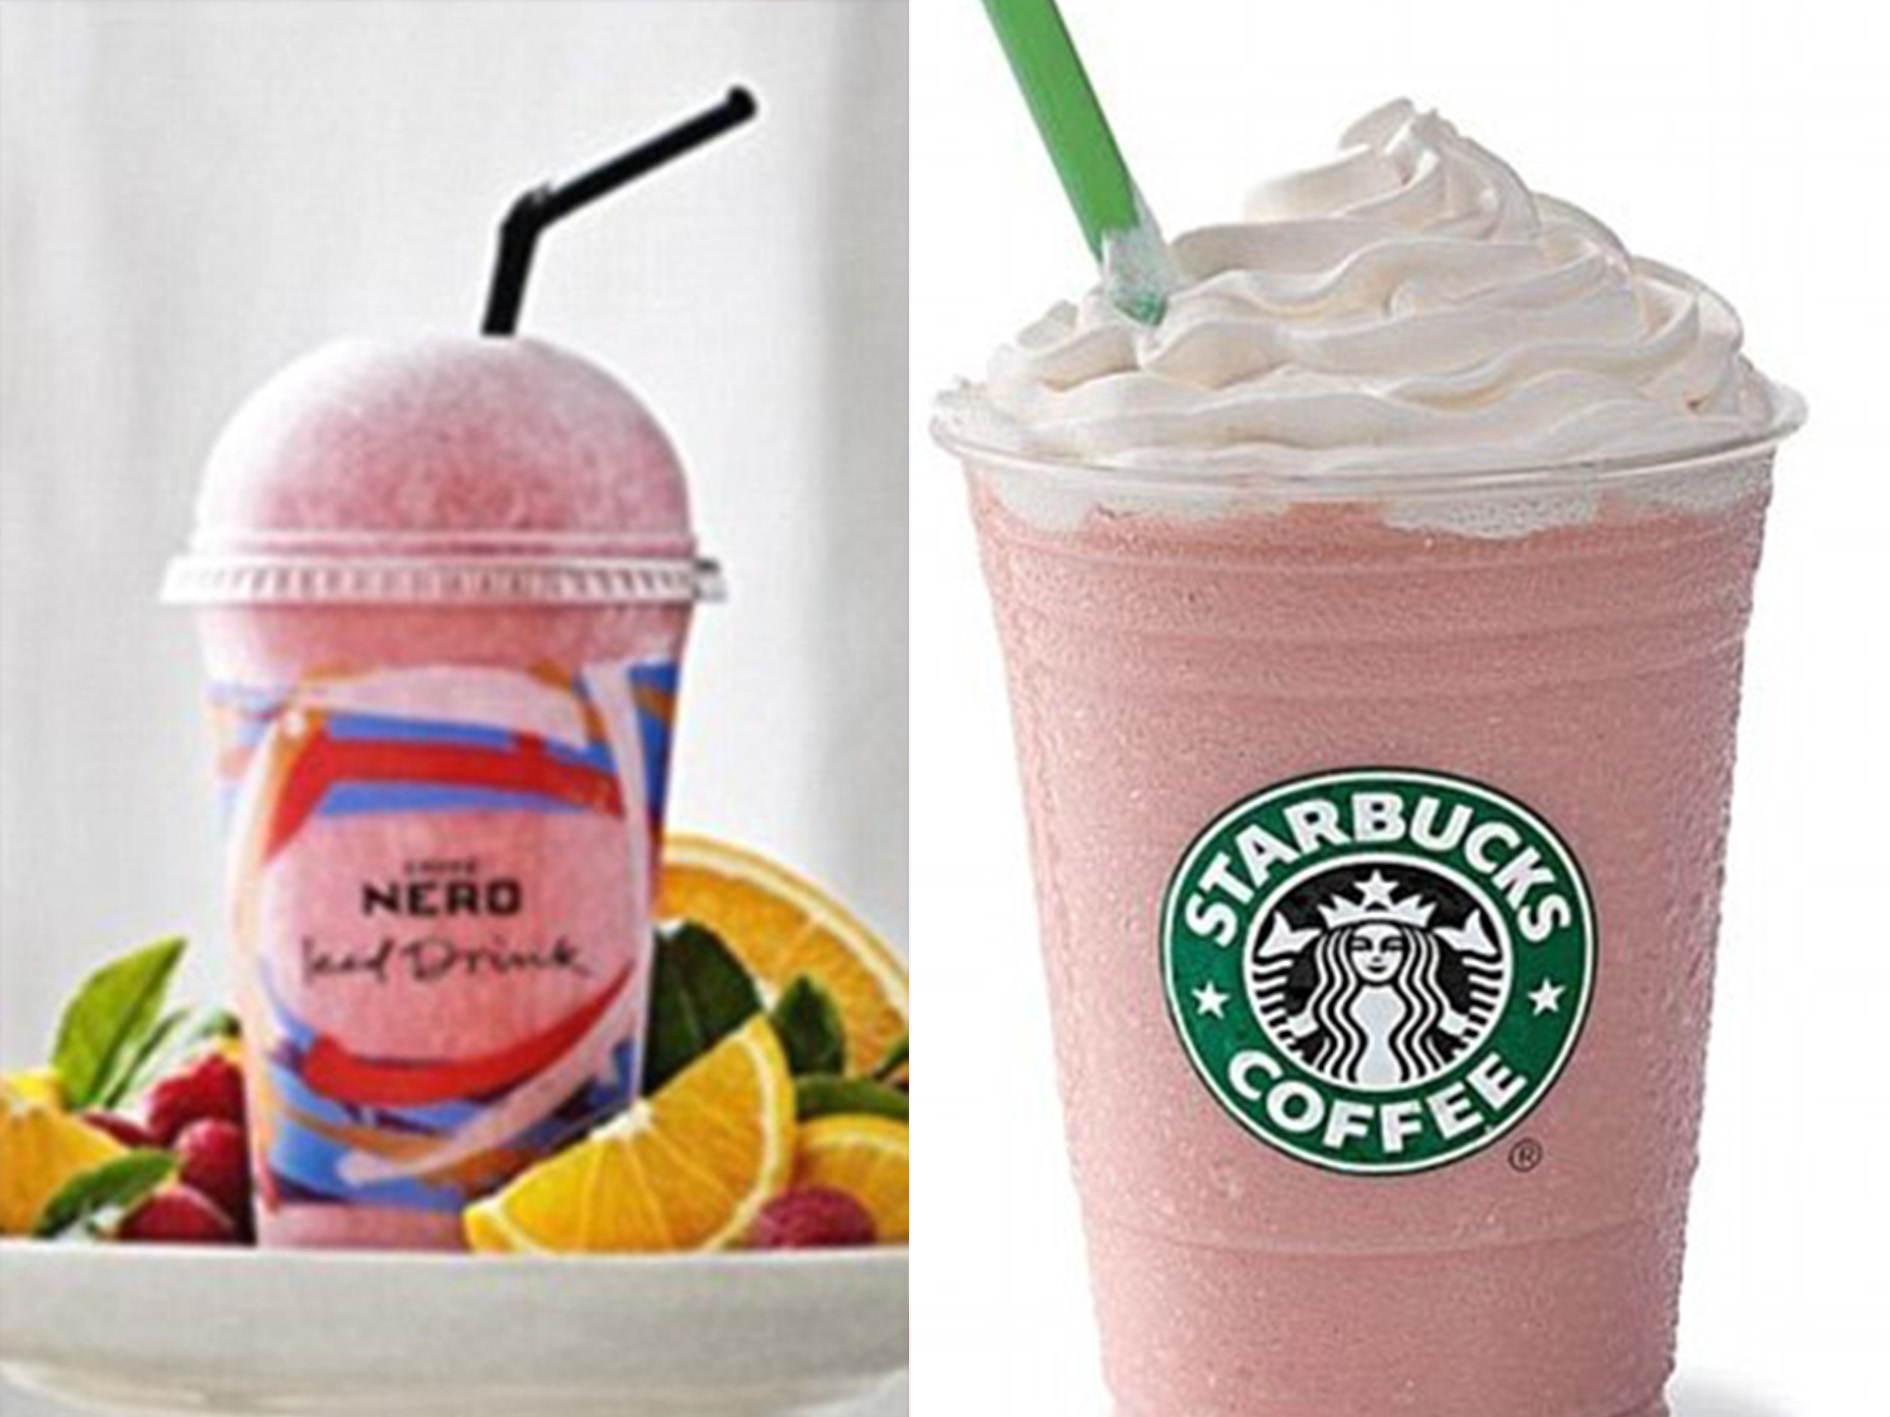 Caffe Nero Raspberry and Orange Fruit Booser and Starbucks Strawberies and Cream Frappuccino